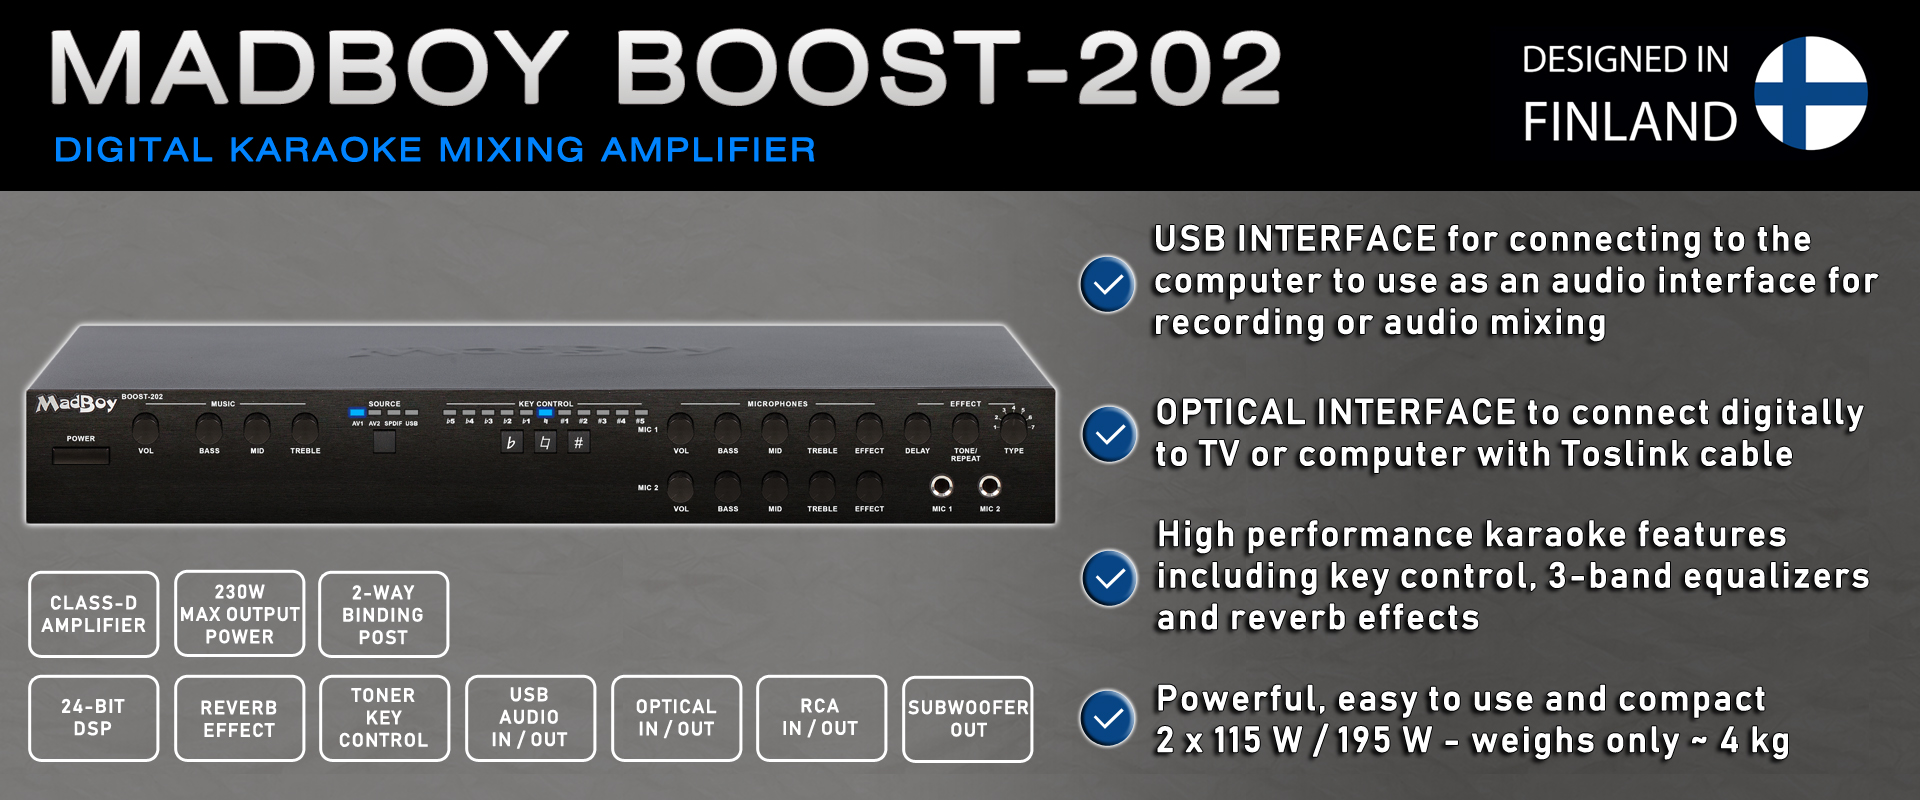 BOOST-202 DIGITAL KARAOKE MIXING AMPLIFIER - DESIGNED IN FINLAND